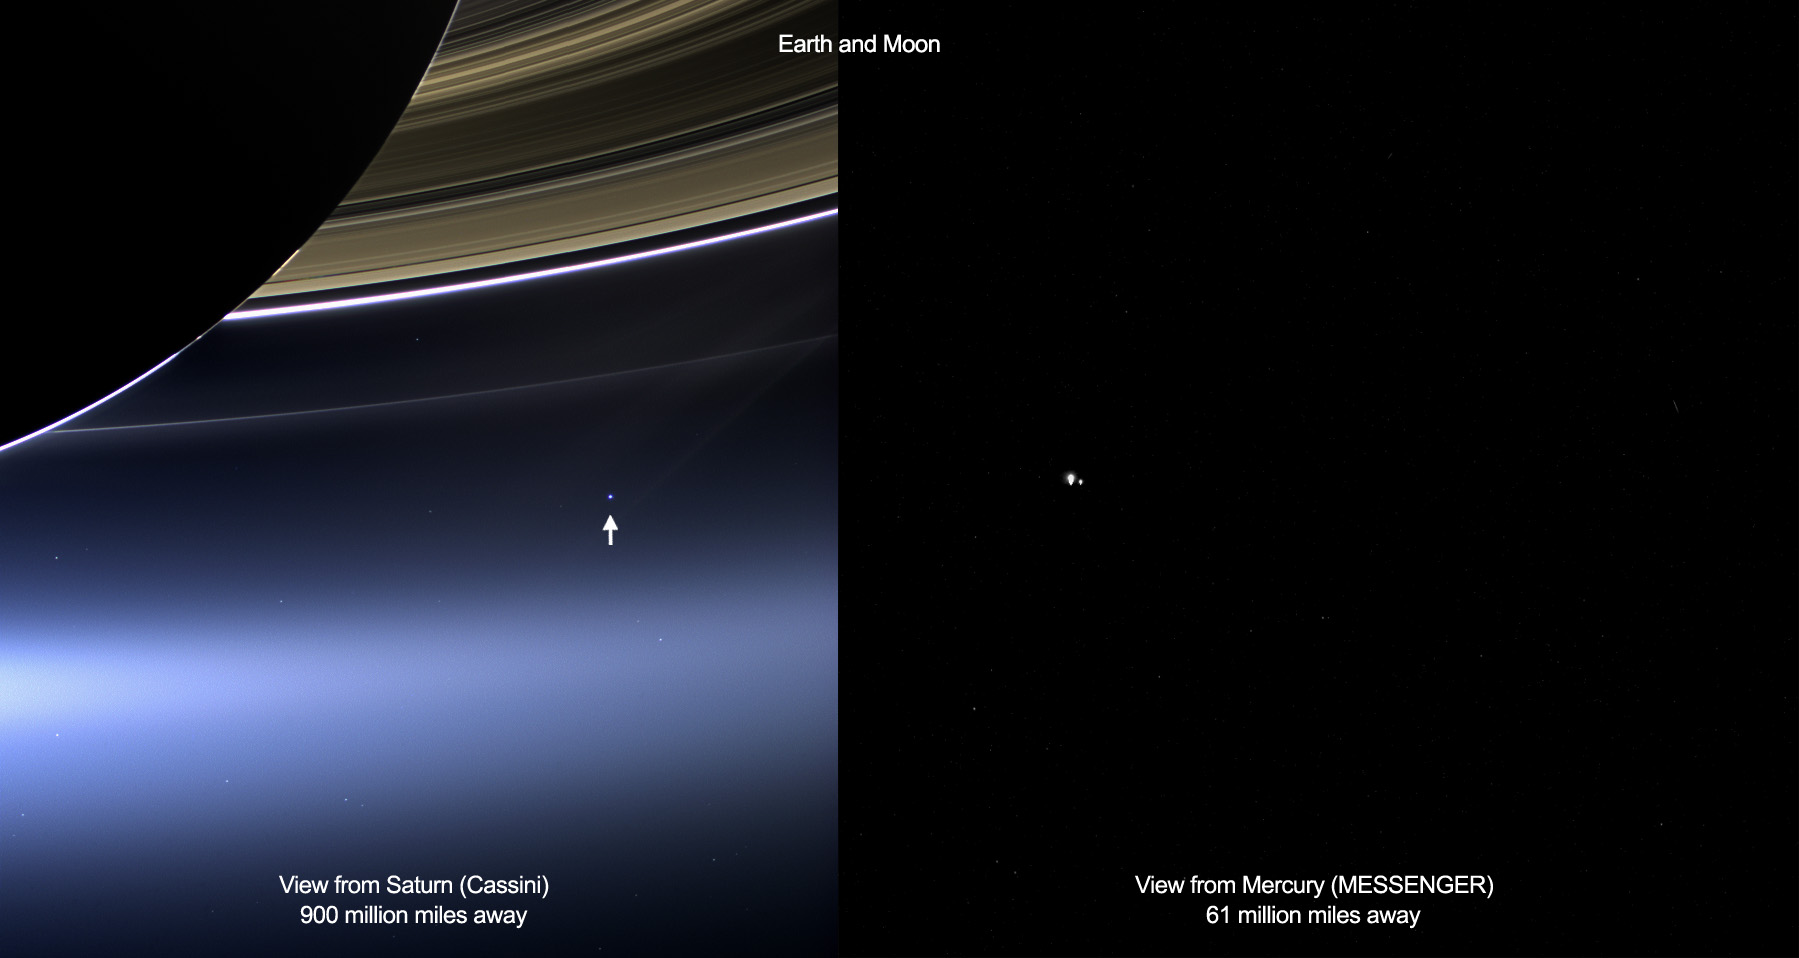 Planet earth photographed from space. Two Views of Home: These images show views of Earth and the moon from NASA's Cassini (left) and MESSENGER spacecraft (right) from July 19, 2013. (Credit: NASA/JPL-Caltech/Space Science Institute and NASA/Johns Hopkins University Applied Physics Laboratory/Carnegie Institution of Washington)